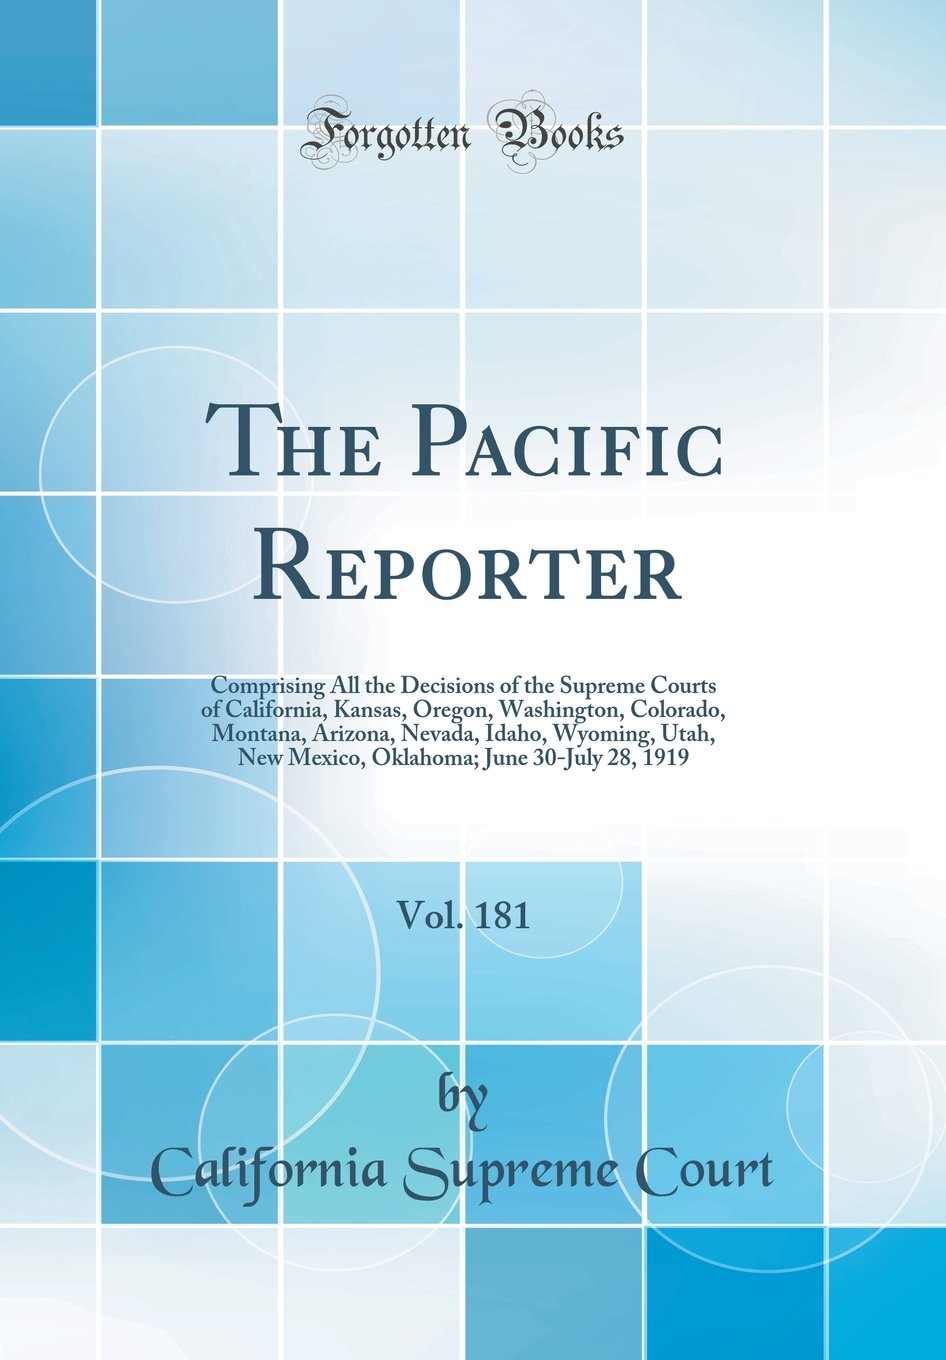 The Pacific Reporter, Vol. 181: Comprising All the Decisions of the Supreme Courts of California, Kansas, Oregon, Washington, Colorado, Montana, ... June 30-July 28, 1919 (Classic Reprint) pdf